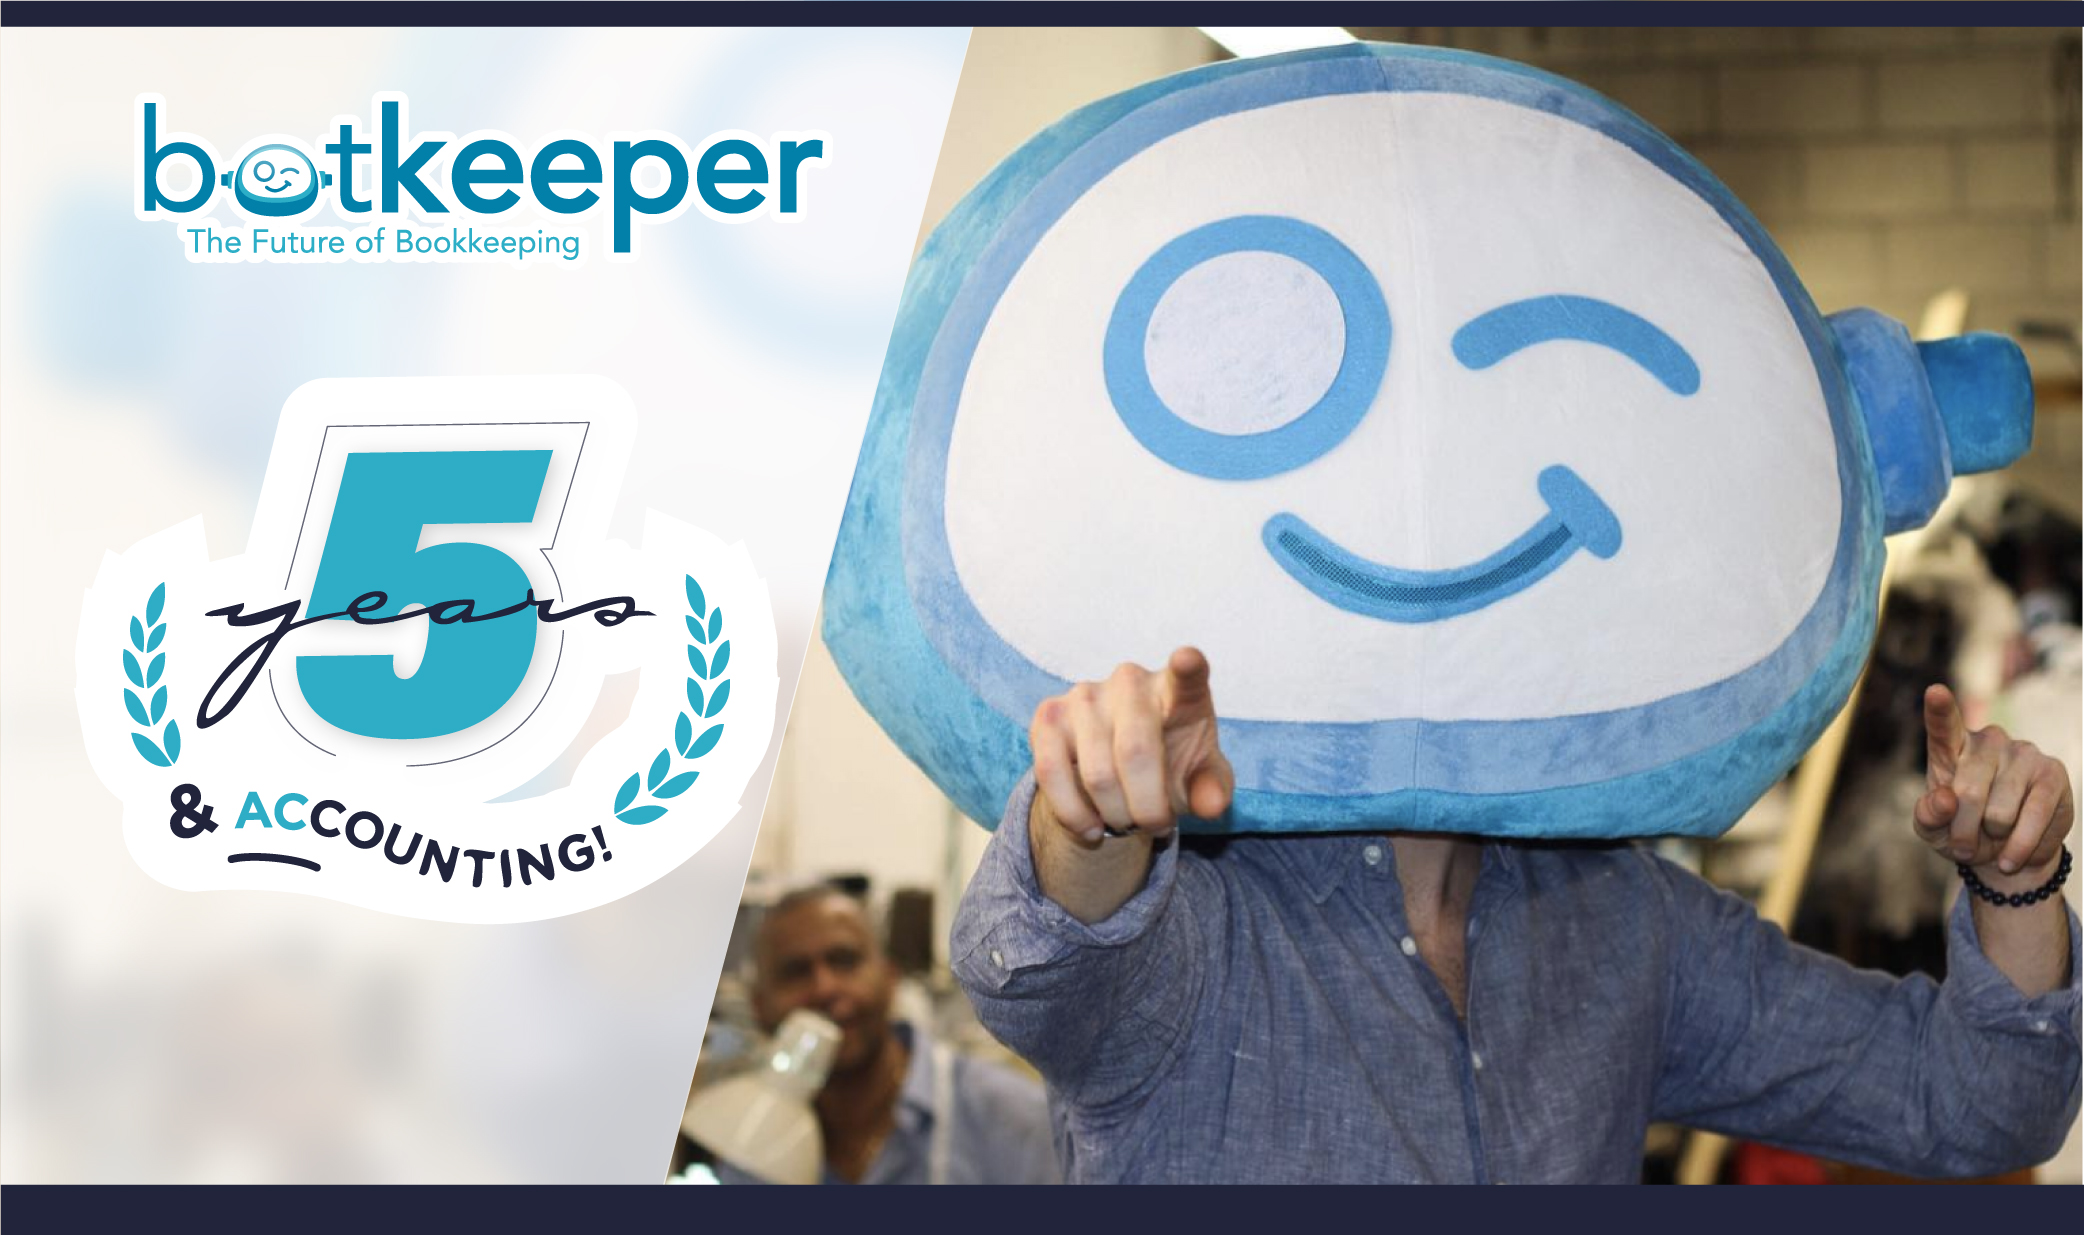 Botkeeper Celebrates Five Years & Accounting | Botkeeper